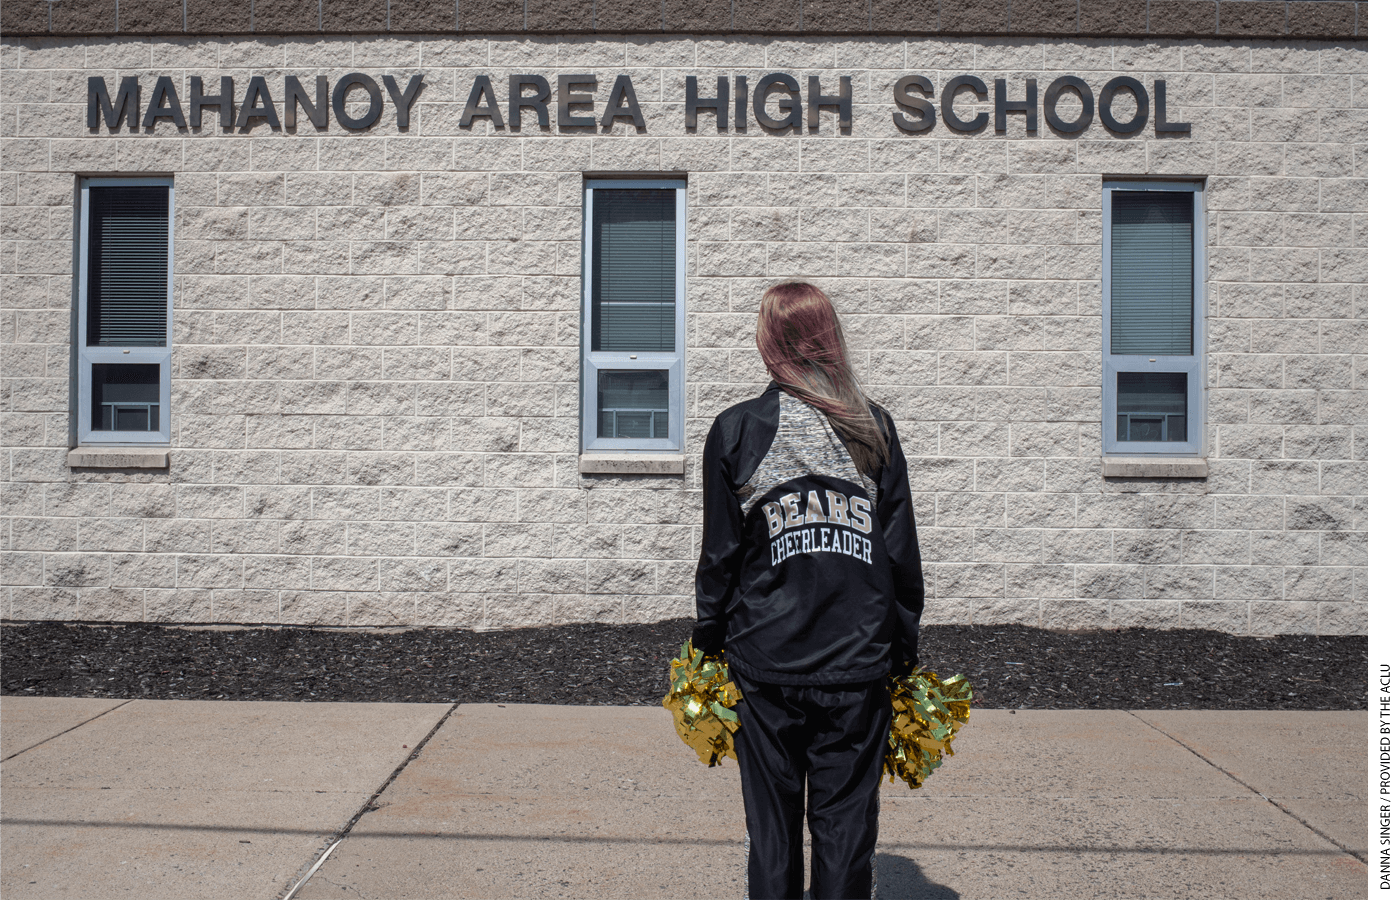 Cheerleader stands in front of Mahanoy Area High School